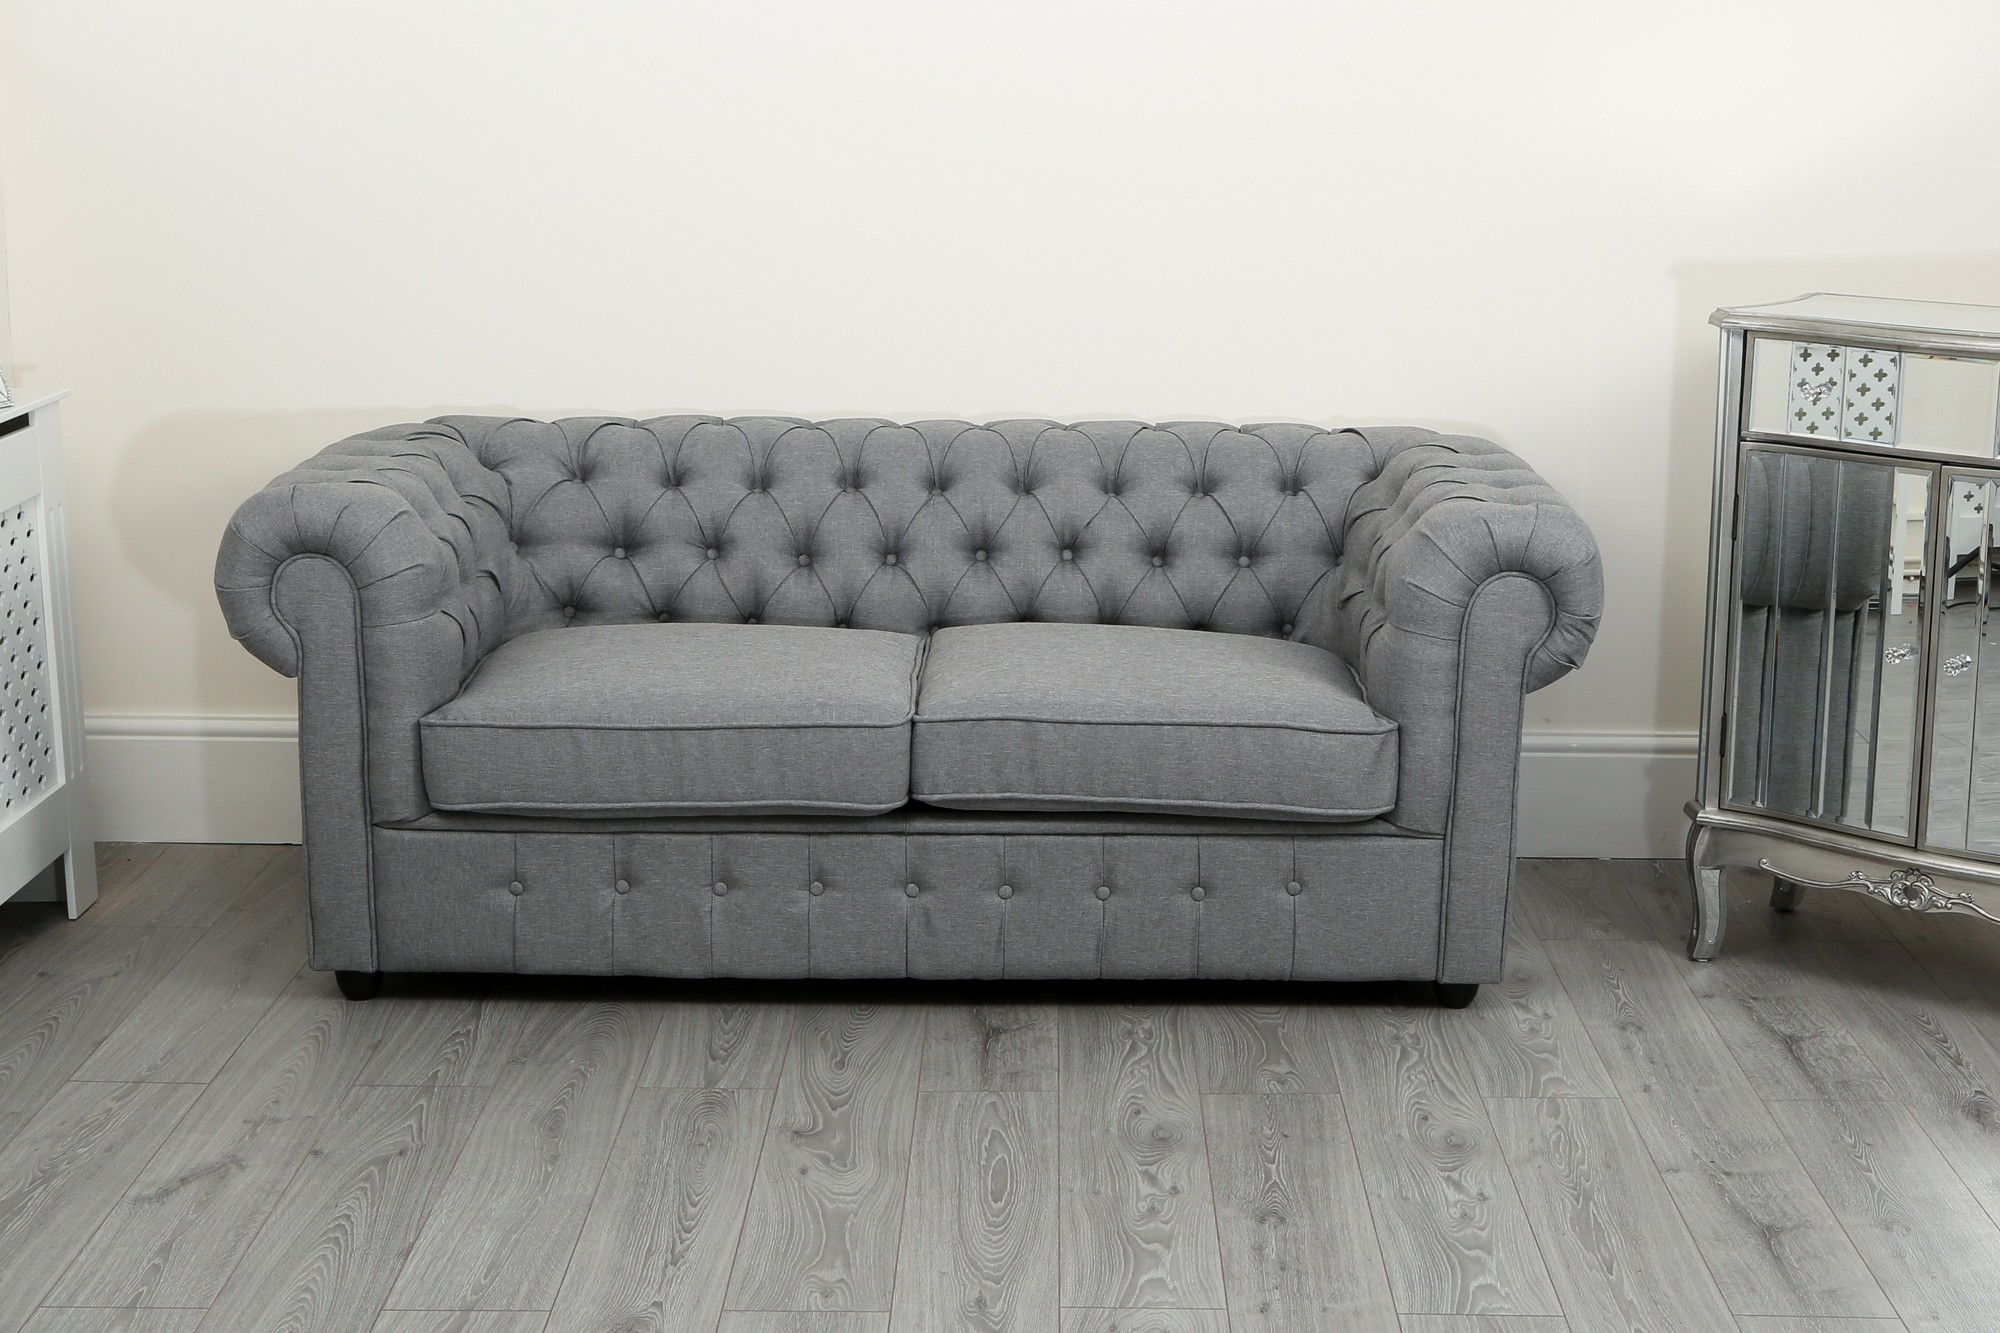 chesterfield sofa suite 3 2 and 1 seater in grey linen fabric abreo home furniture. Black Bedroom Furniture Sets. Home Design Ideas